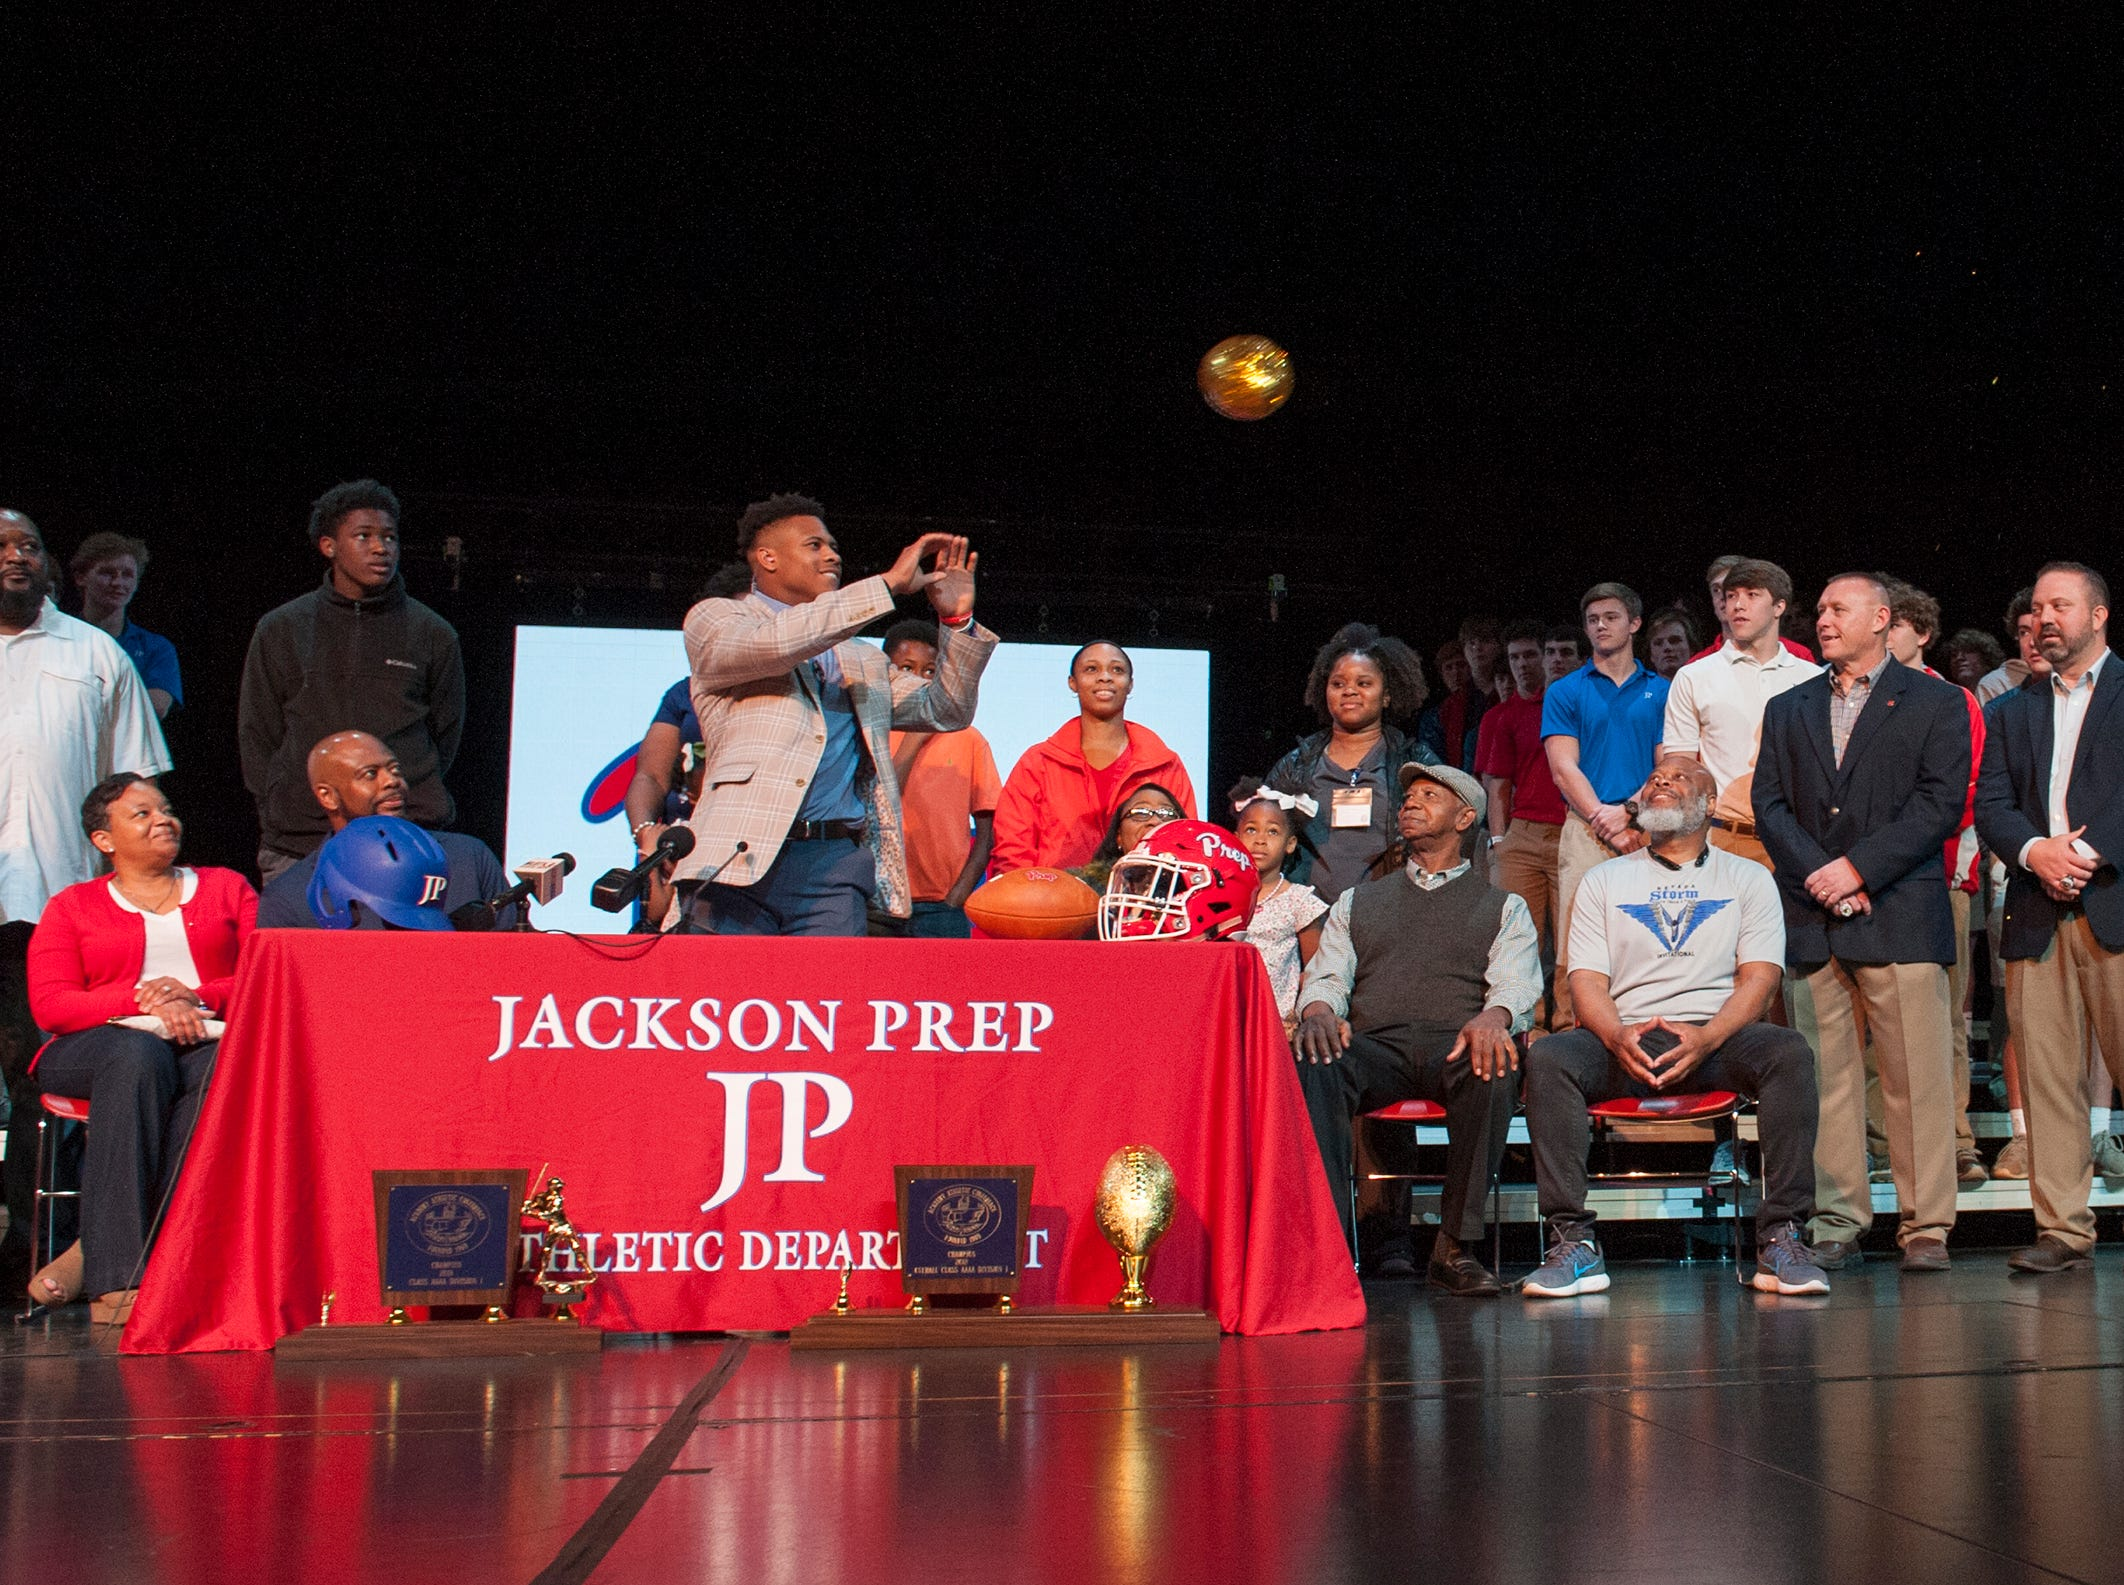 Jackson Prep's Jerrion Ealy receives a gold-sequence-coved football passed to him by Prep's head coach Rickey Ealy during Signing Day at the school Friday, Feb. 6, 2019. Inside the ball is a cap indicating his choice of university. Shortly thereafter, he put on an Ole Miss cap, topping it off with the Landshark gesture.